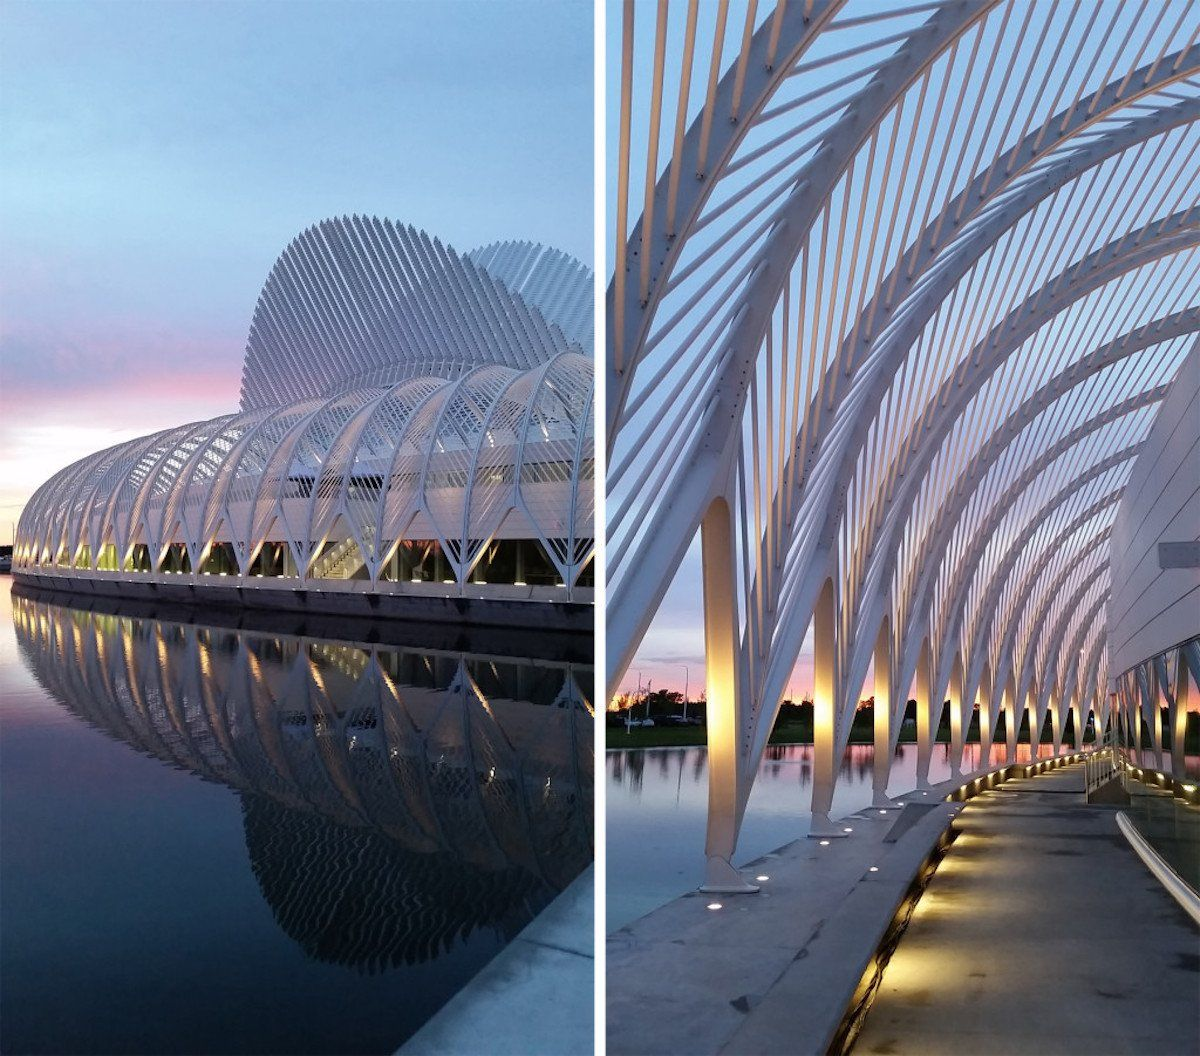 The 22 most beautiful buildings in the world, according to